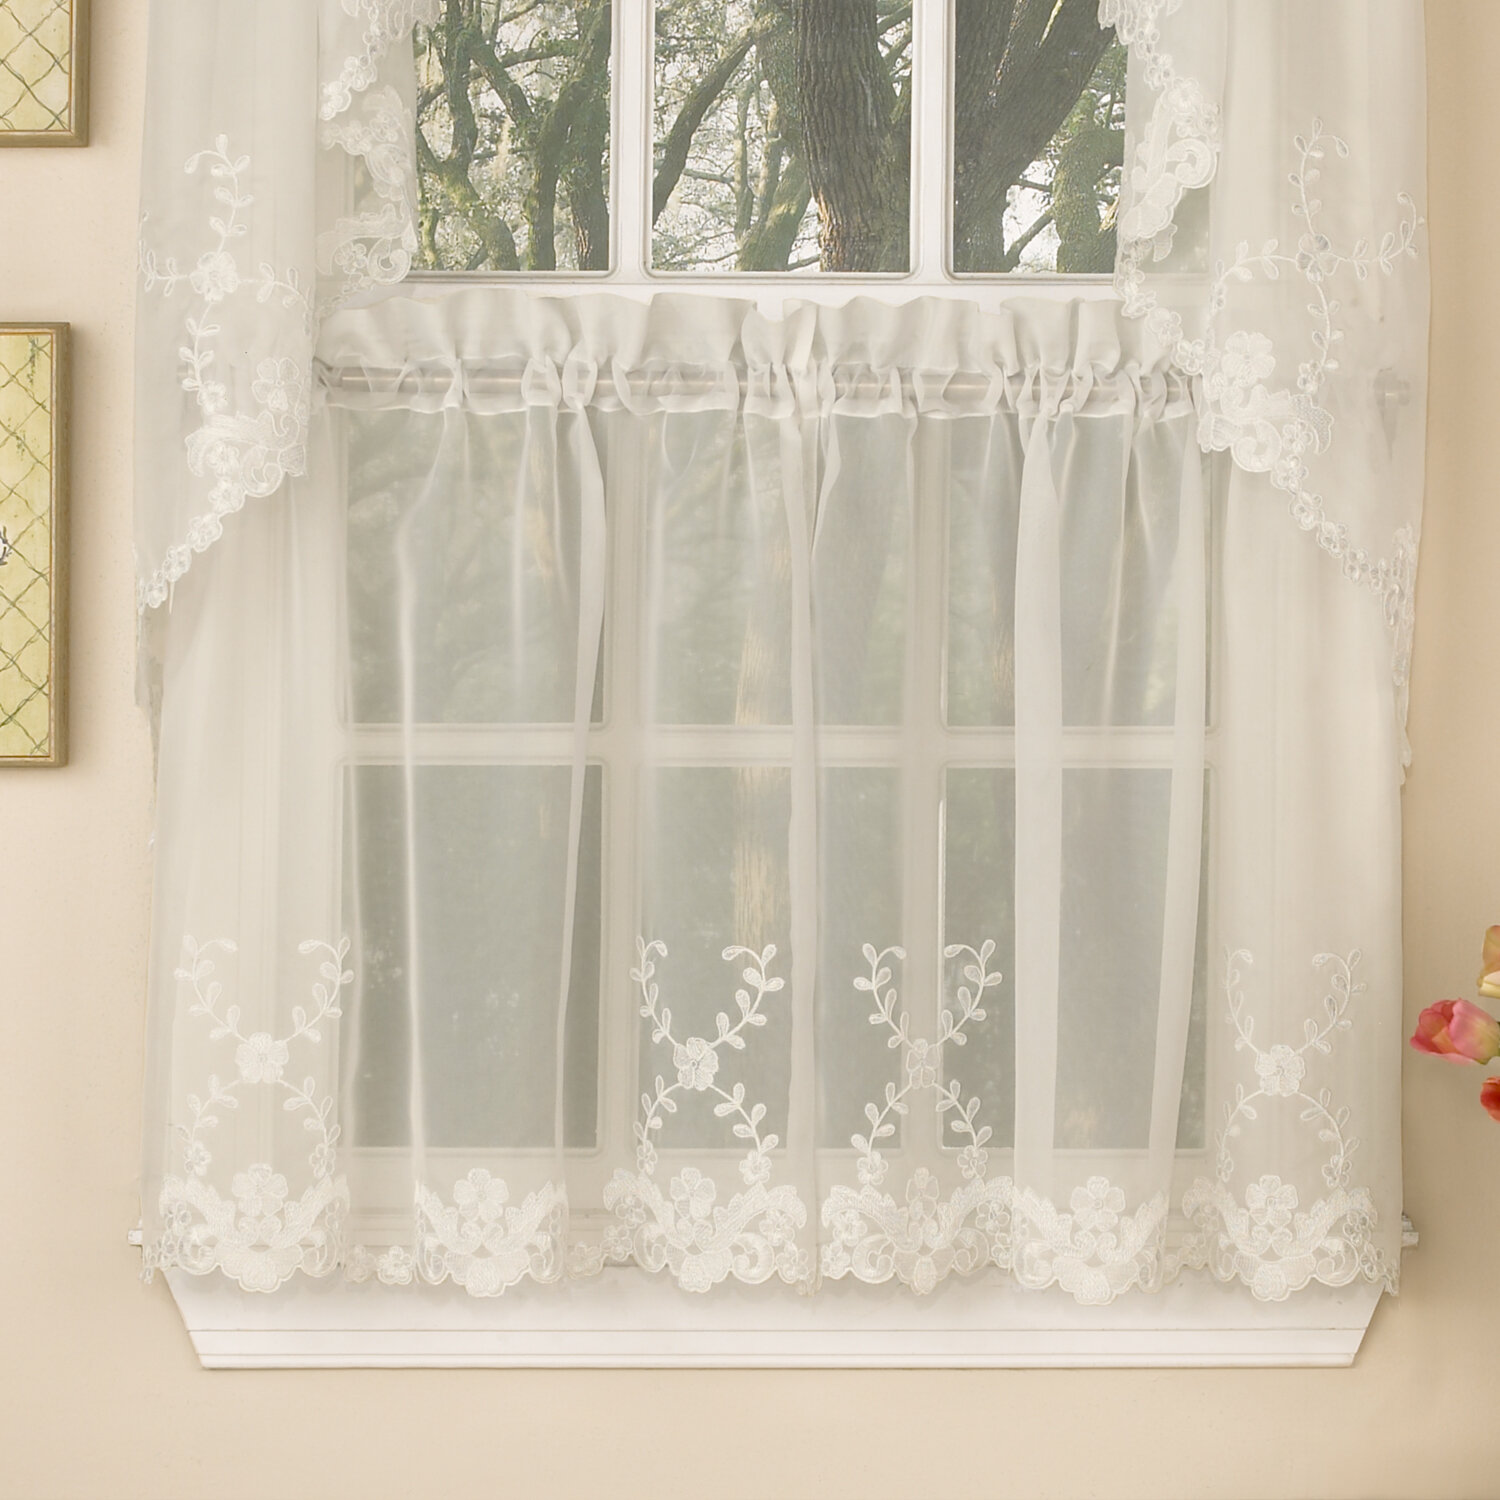 cafe wonderful curtains ideas curtain bedroom for pictures kitchen room valancessheer matching dining with sheer